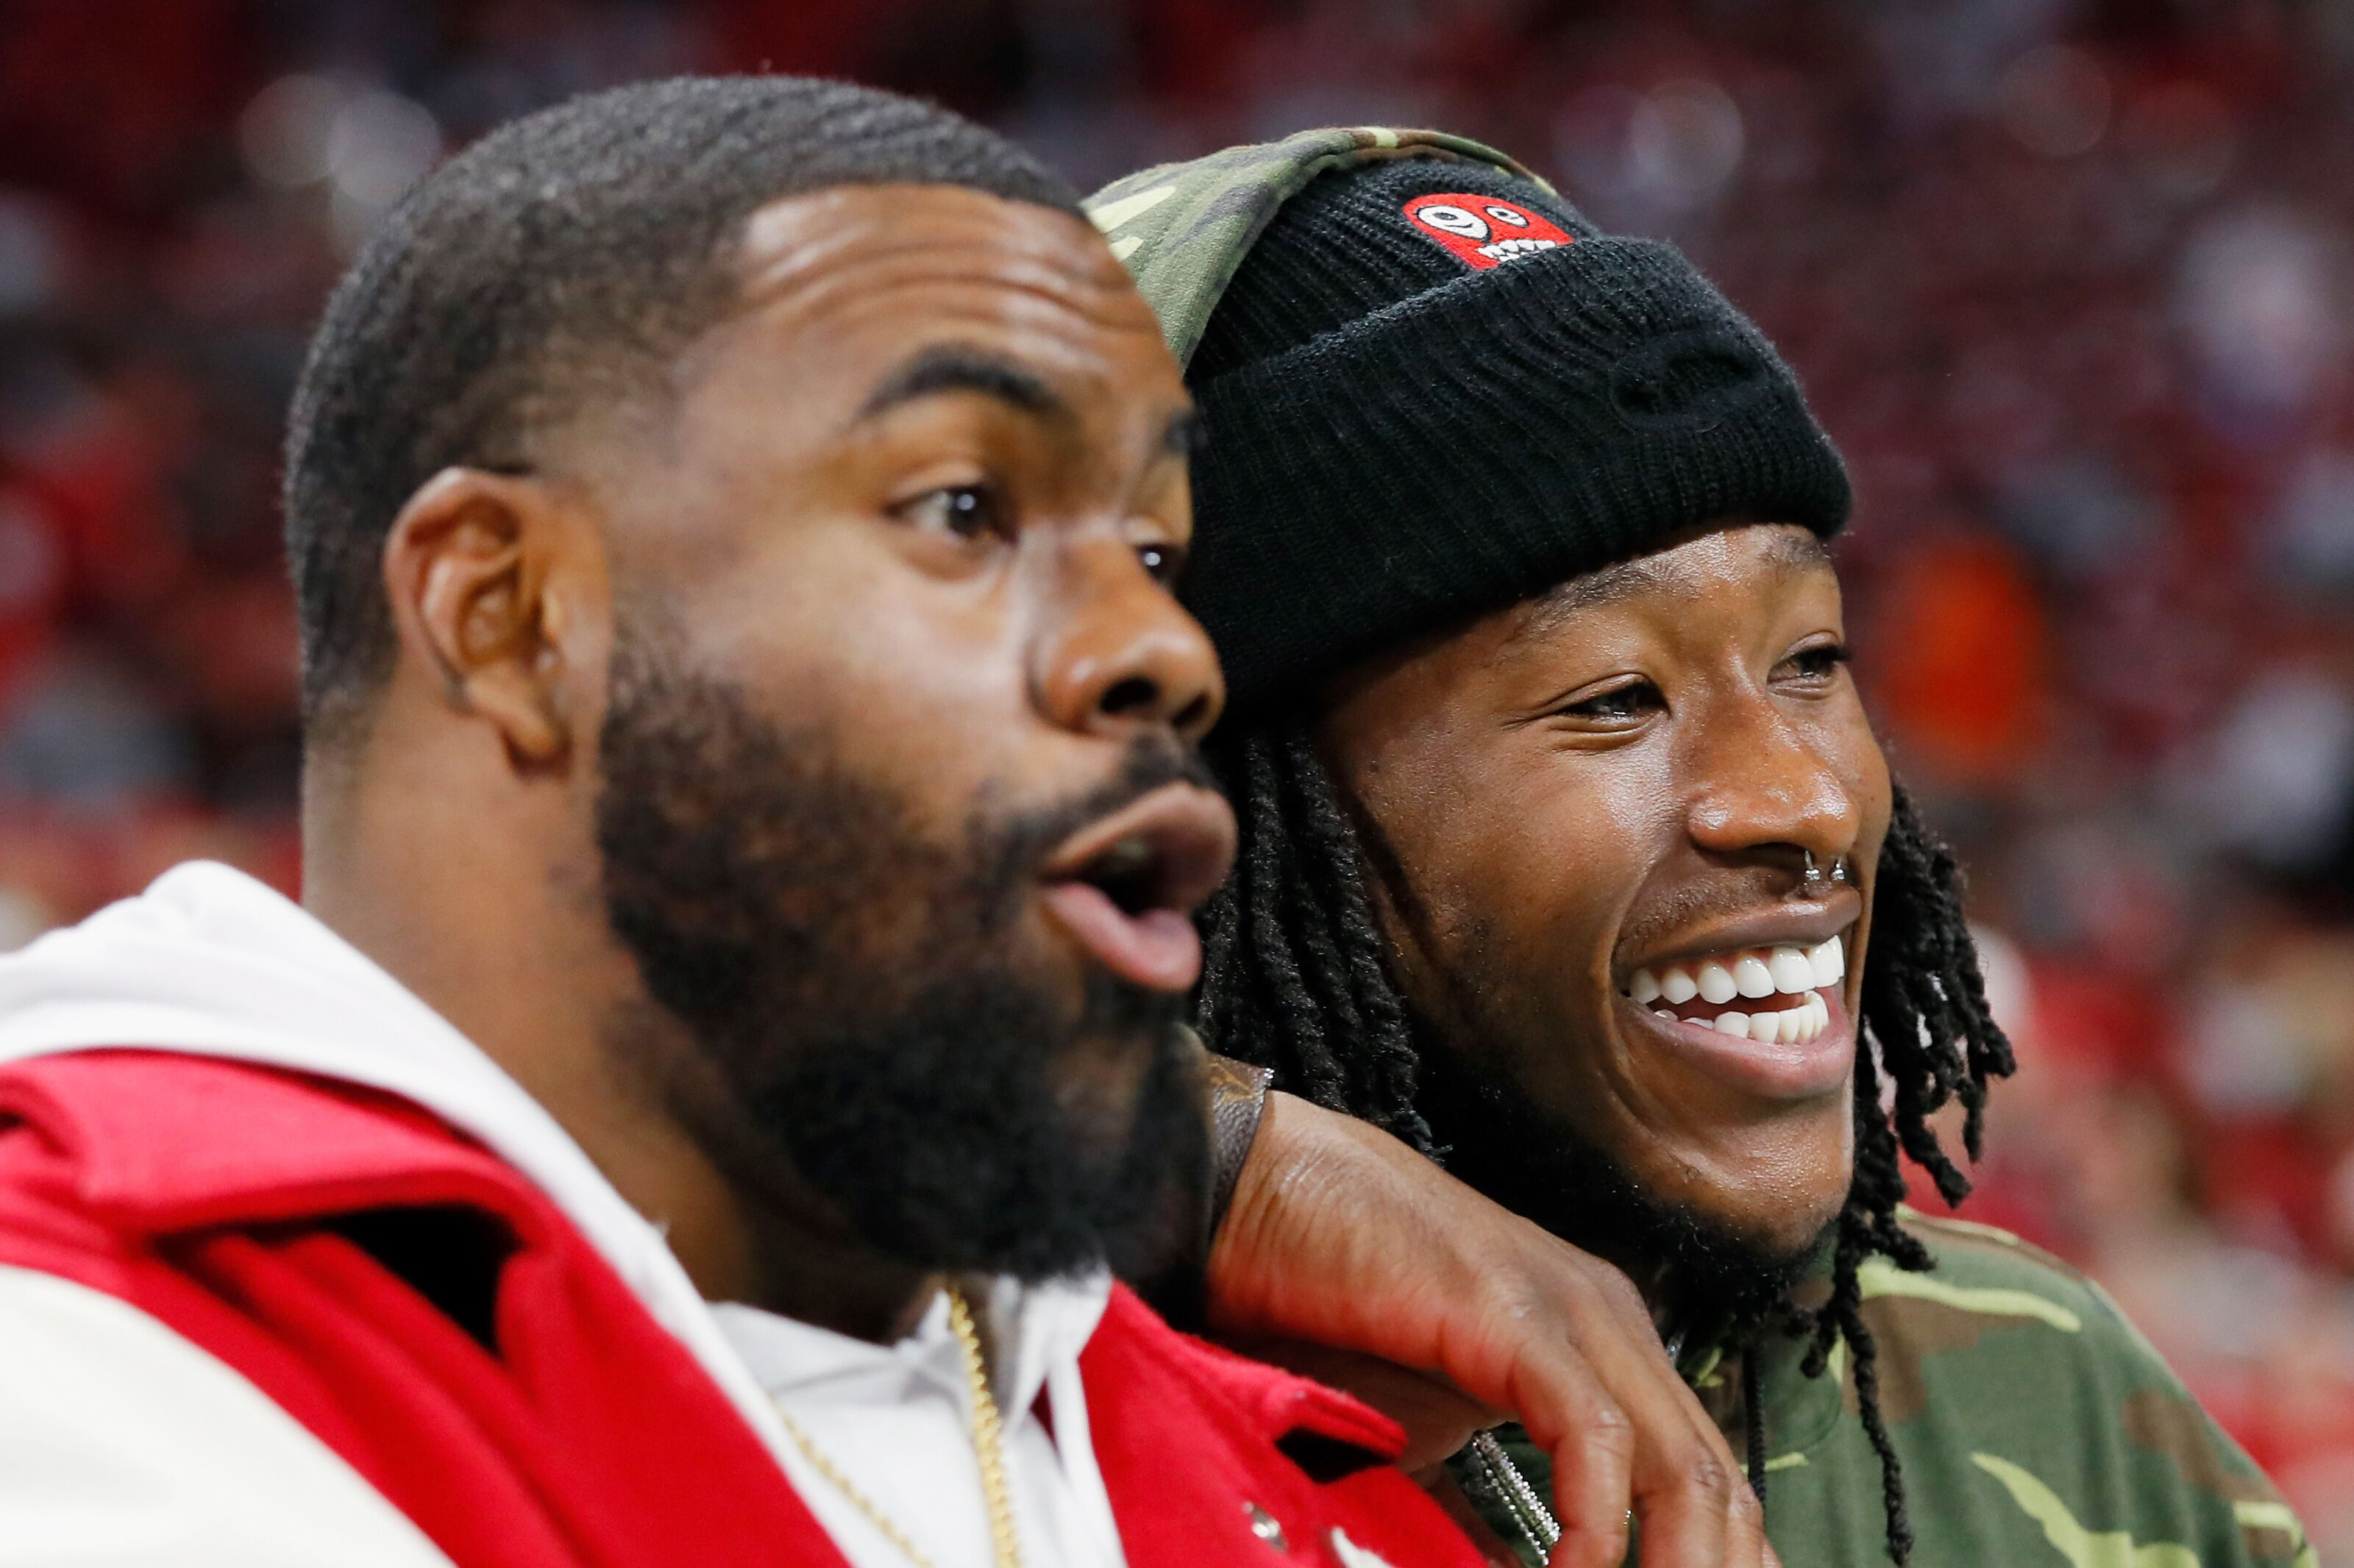 Saints: Alvin Kamara and Mark Ingram getting recognition on and off field